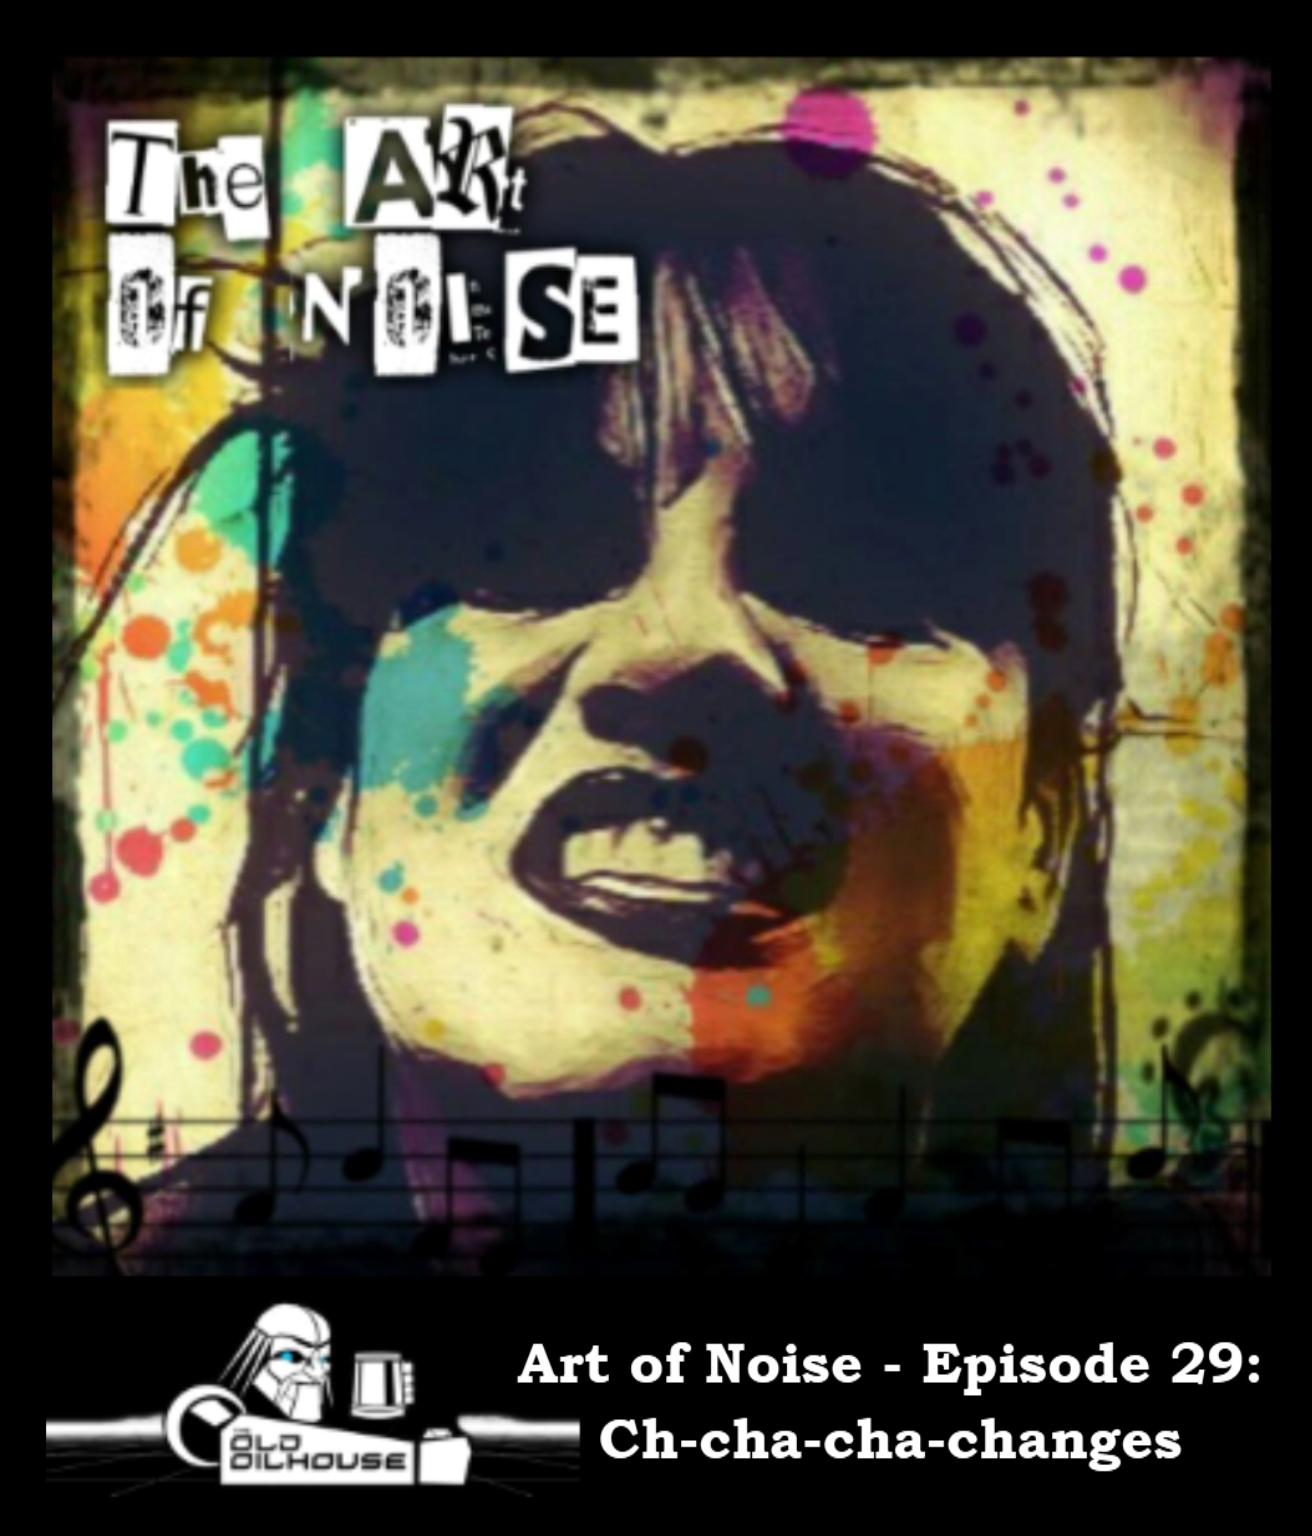 Art of Noise - Episode 29: Ch-cha-cha-changes